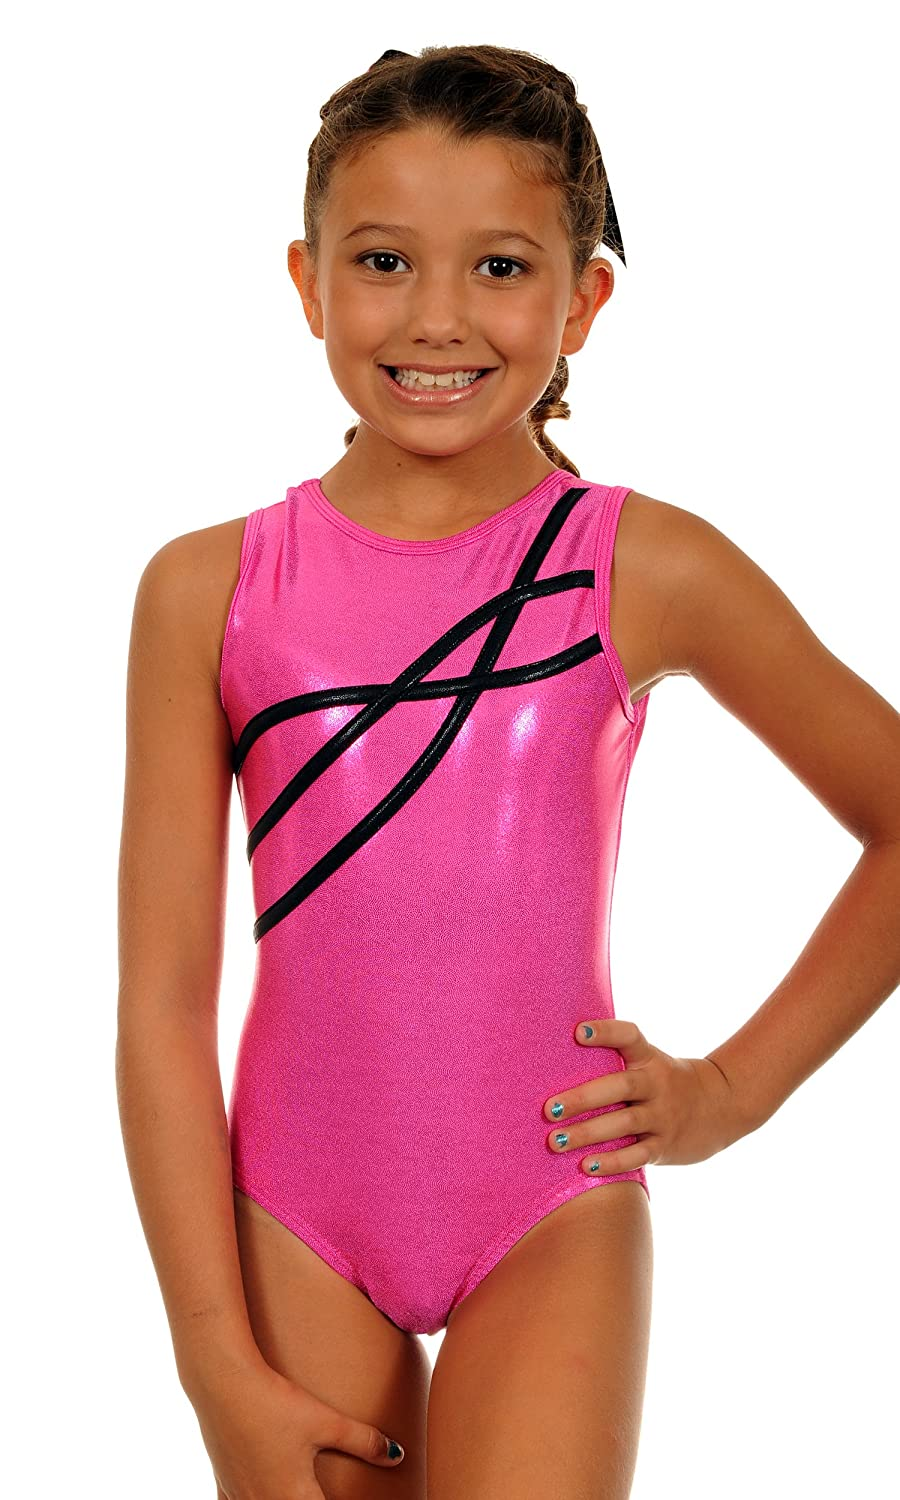 Your idea nude gymnastics girls leotards that would